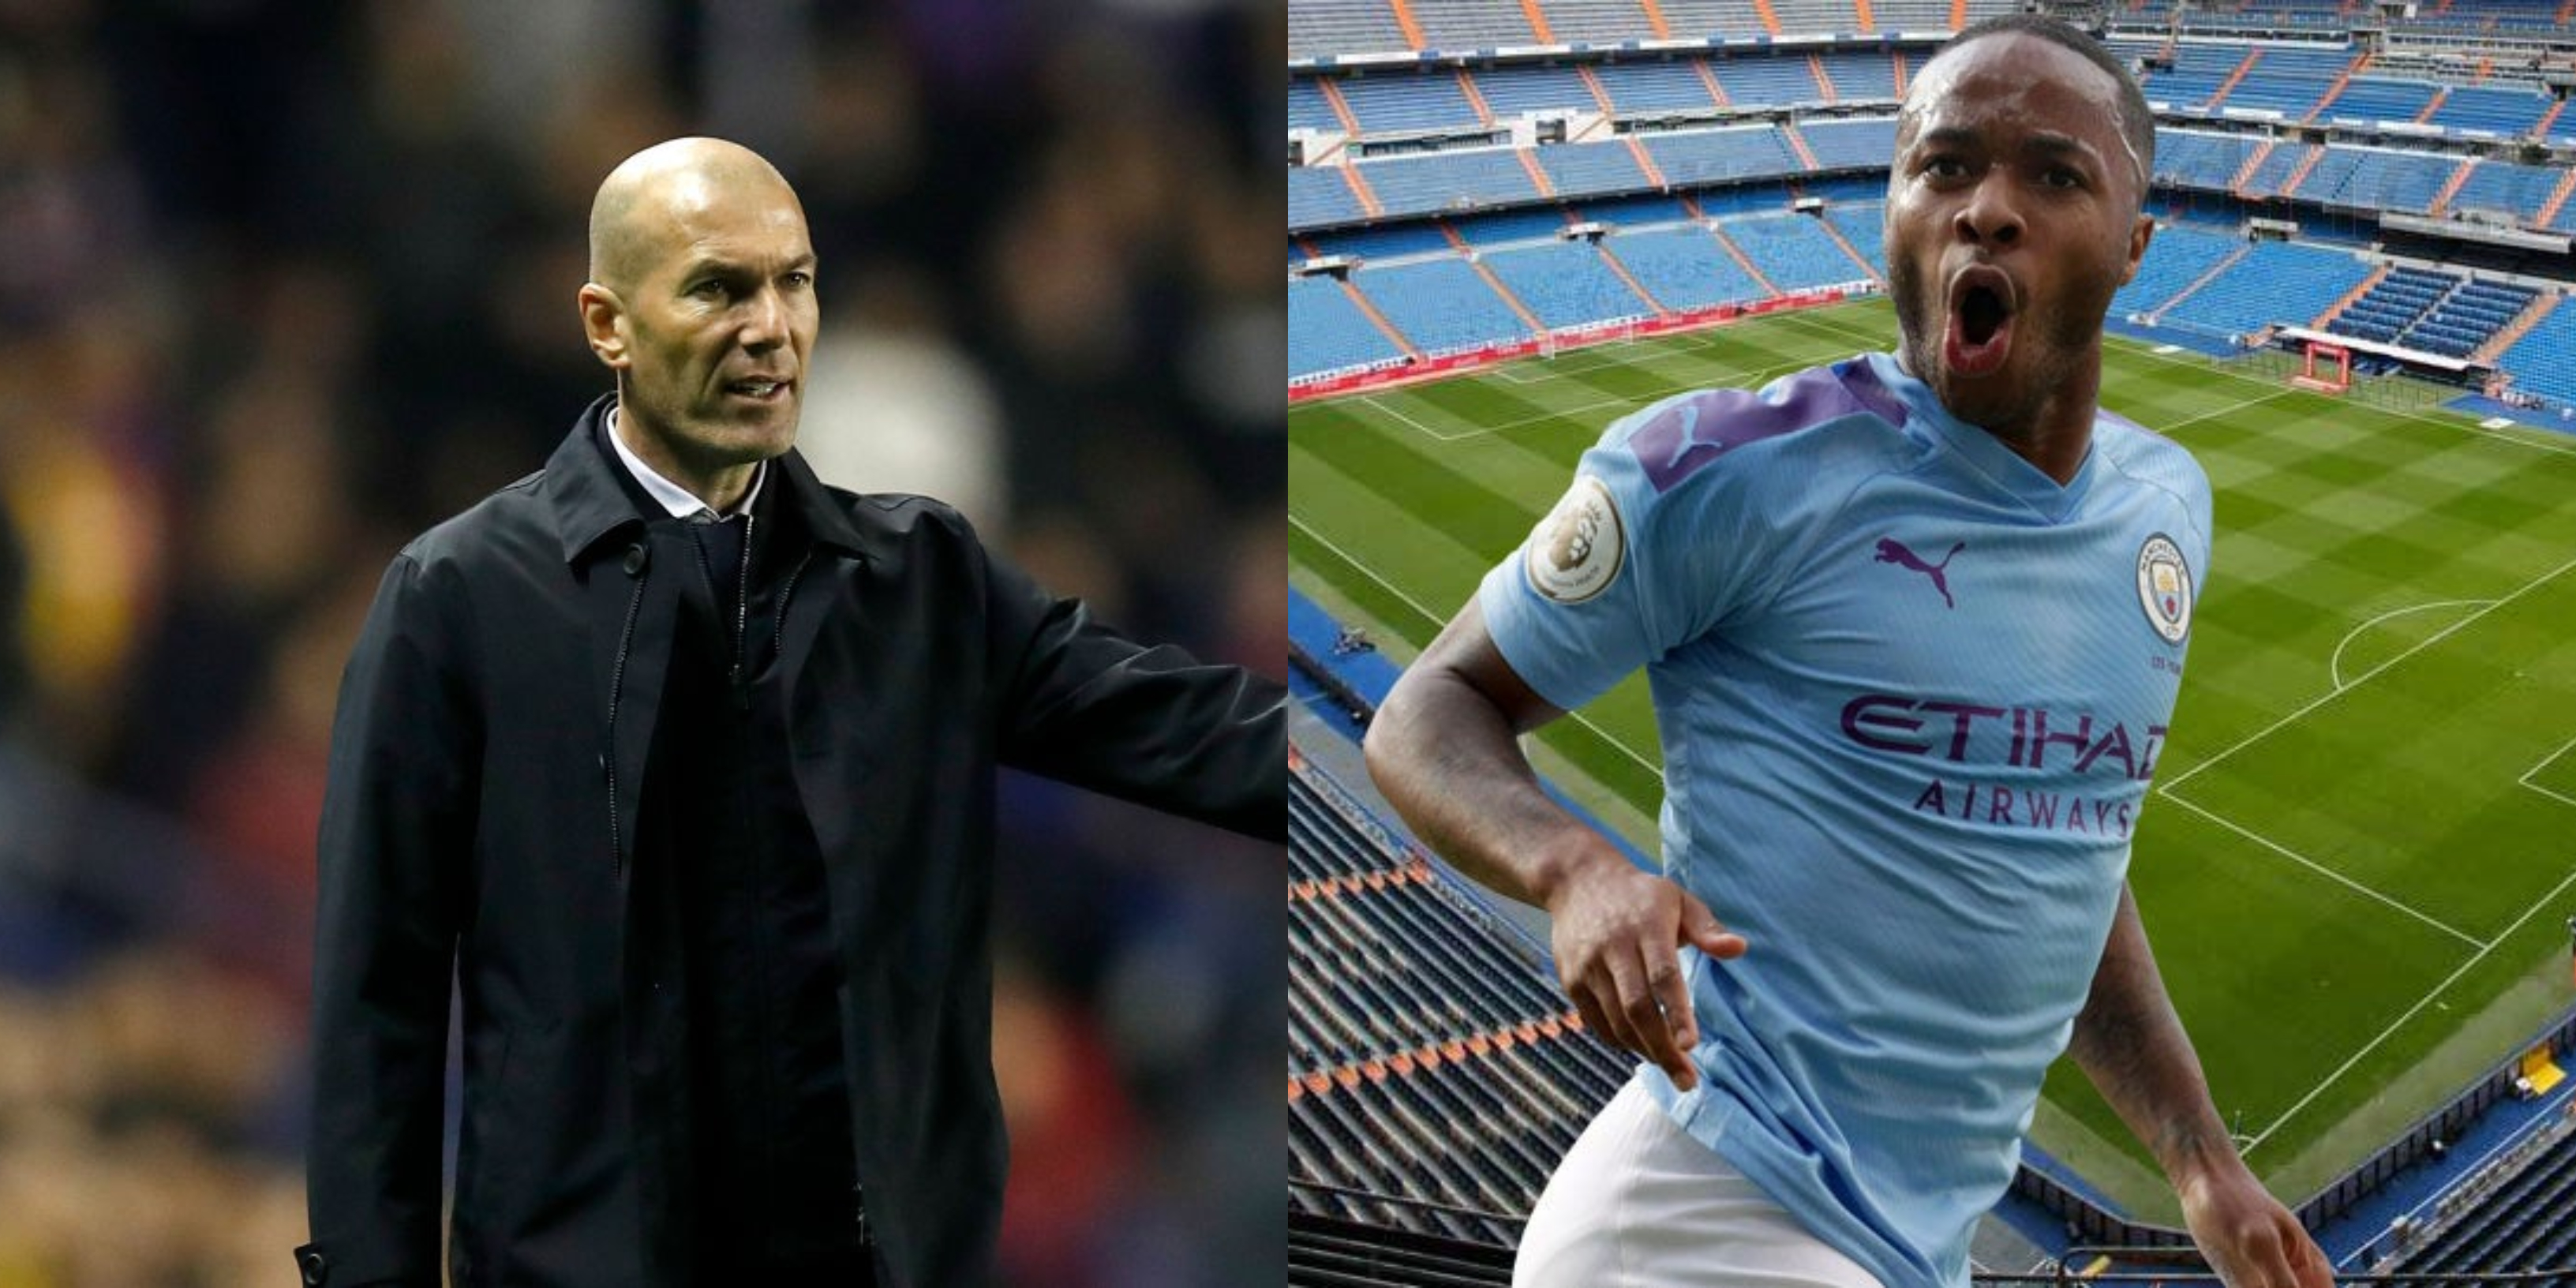 Zidane y Sterling